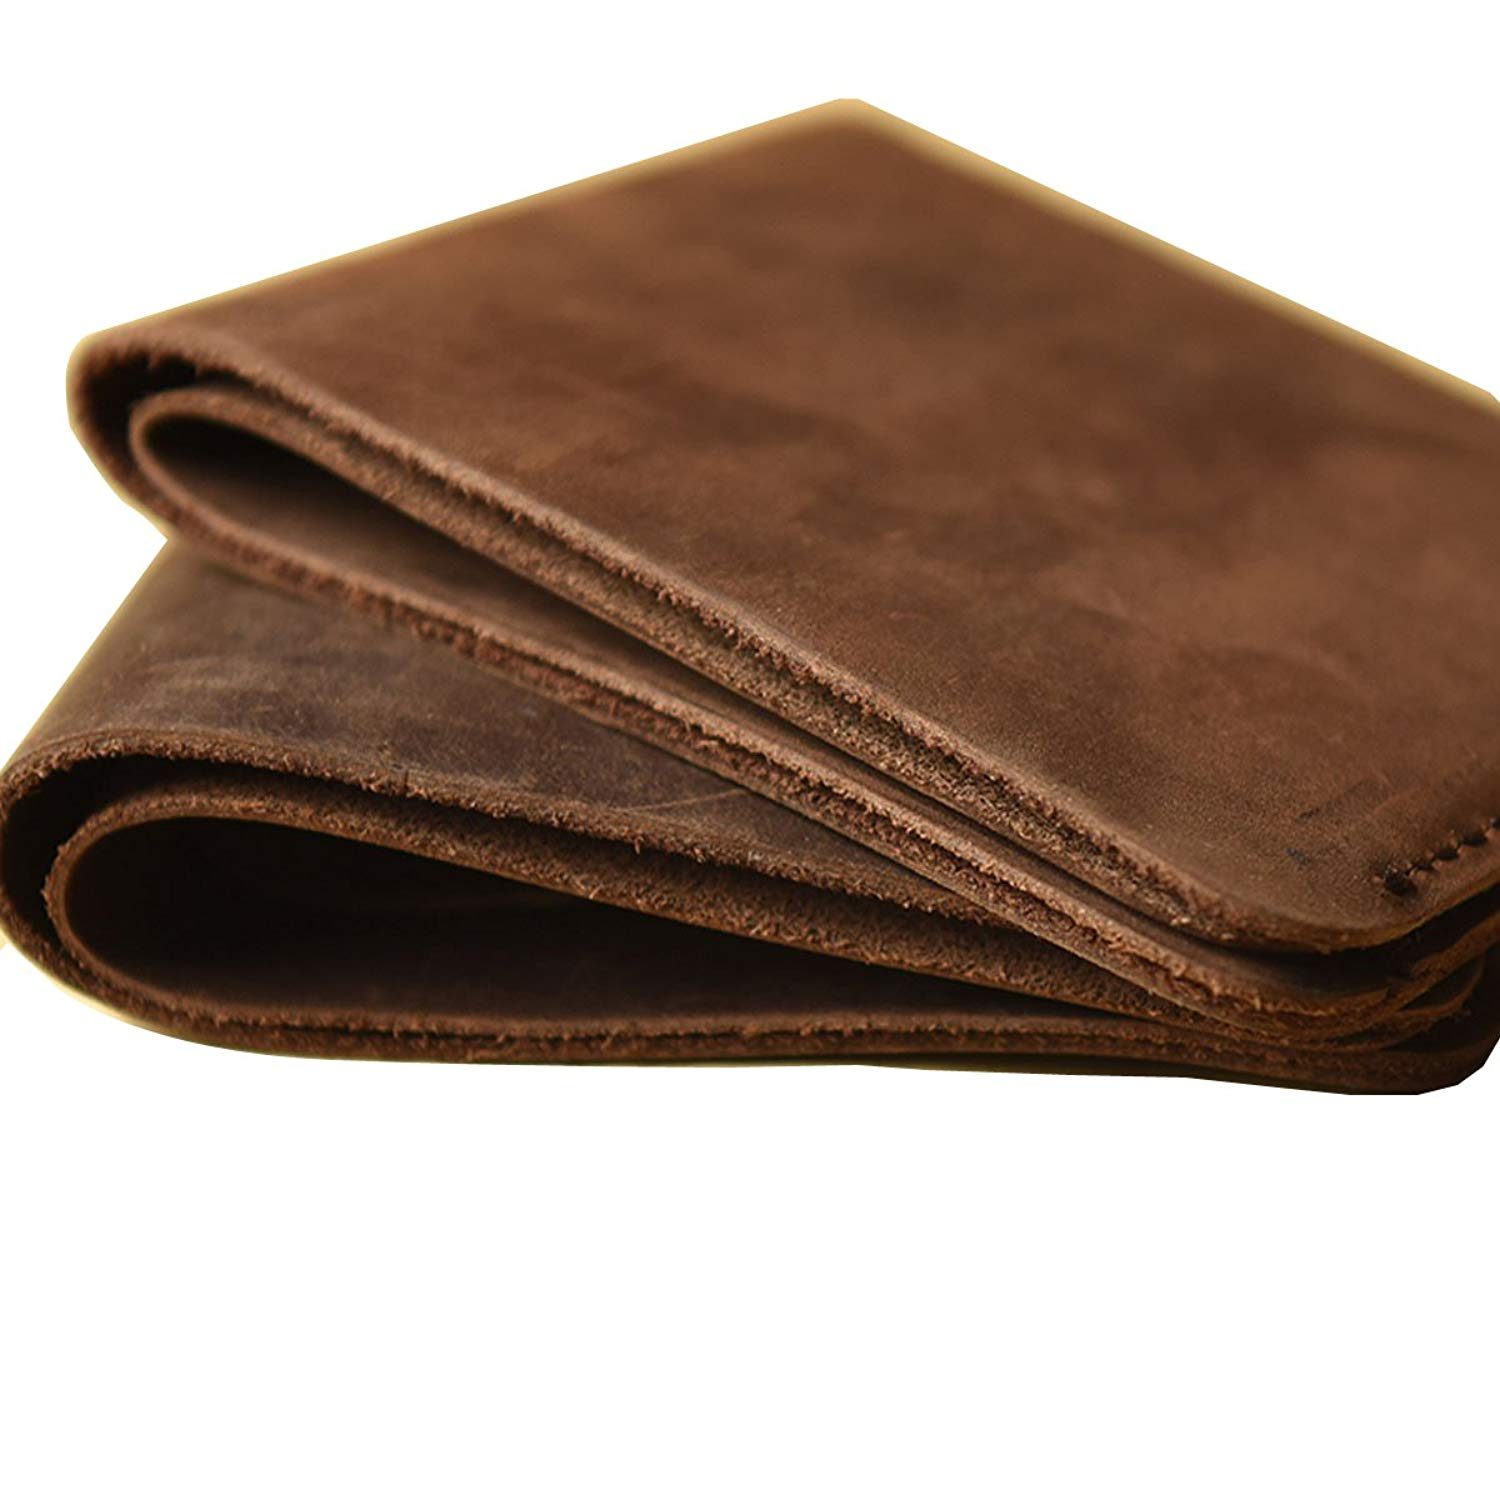 Handmade Men's Wallet TOP-GRAIN Genuine Leather Wallet Bifold Slim Leather Wallet,Classic Bill-fold Wallet, Distressed Leather Wallet Card Holder